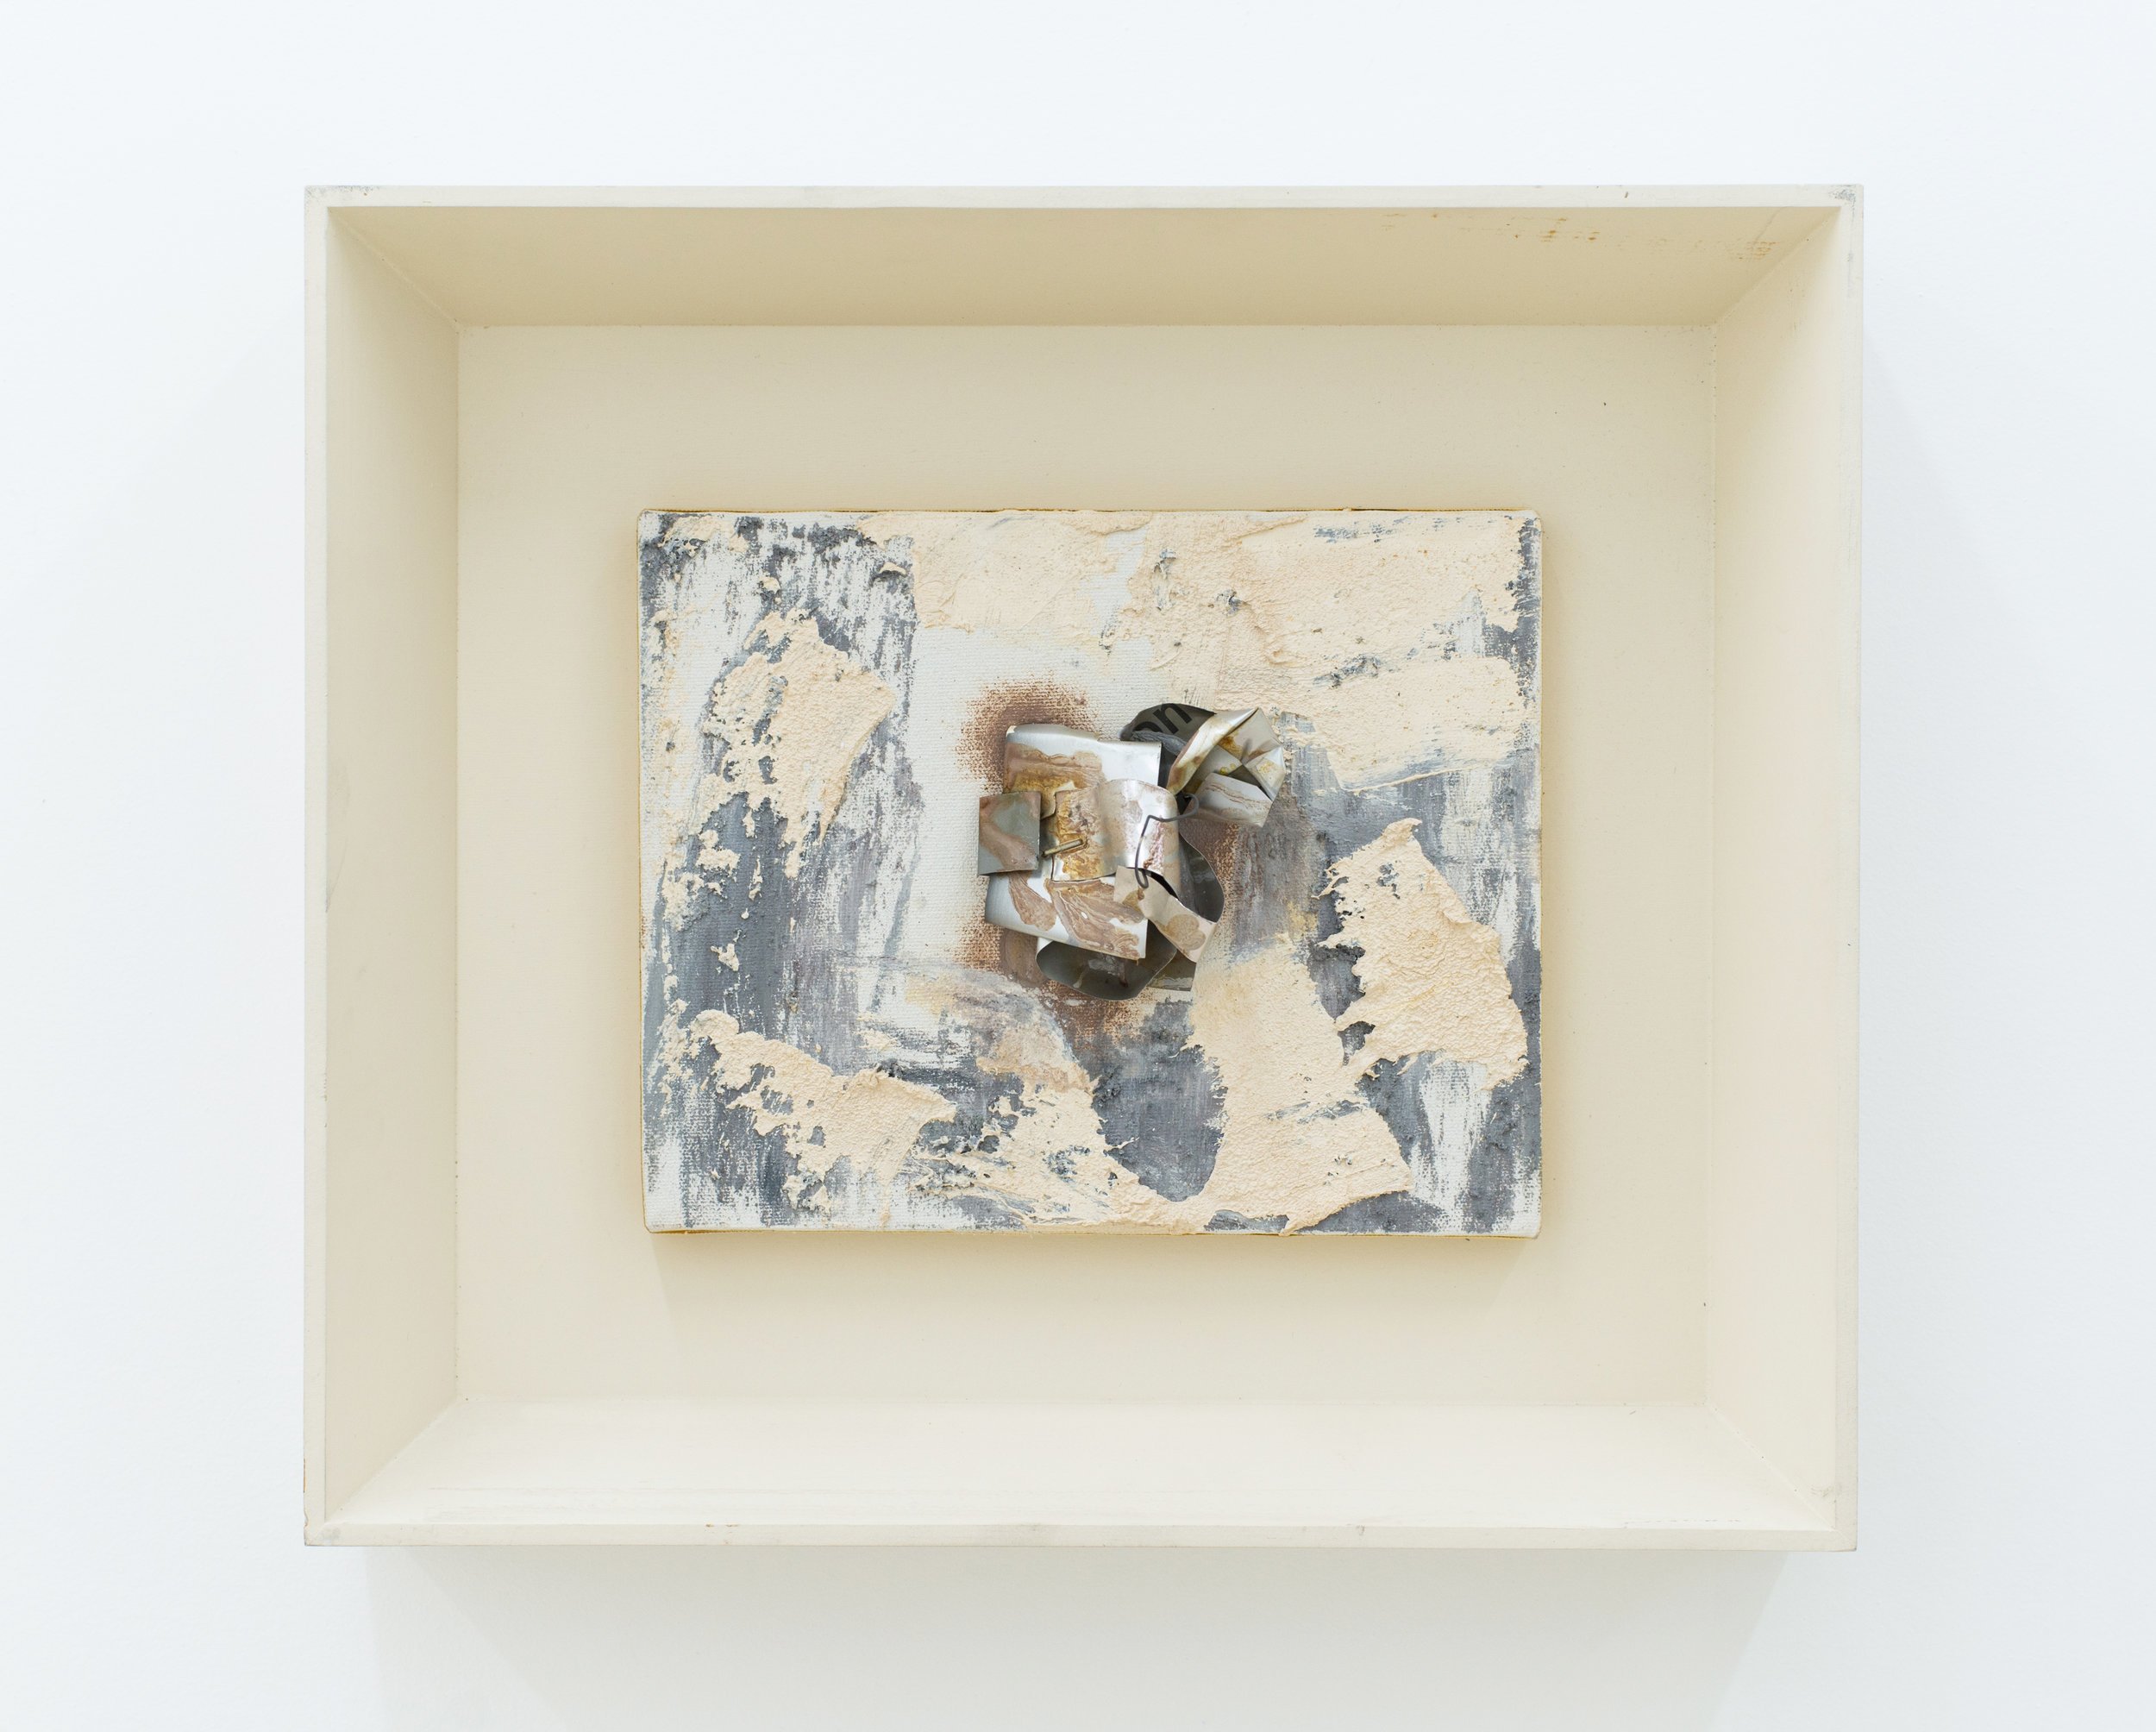 Louise Fishman   Untitled,  1994 Oil, aluminum, wire, staples and glue on canvas 8 x 10 inches